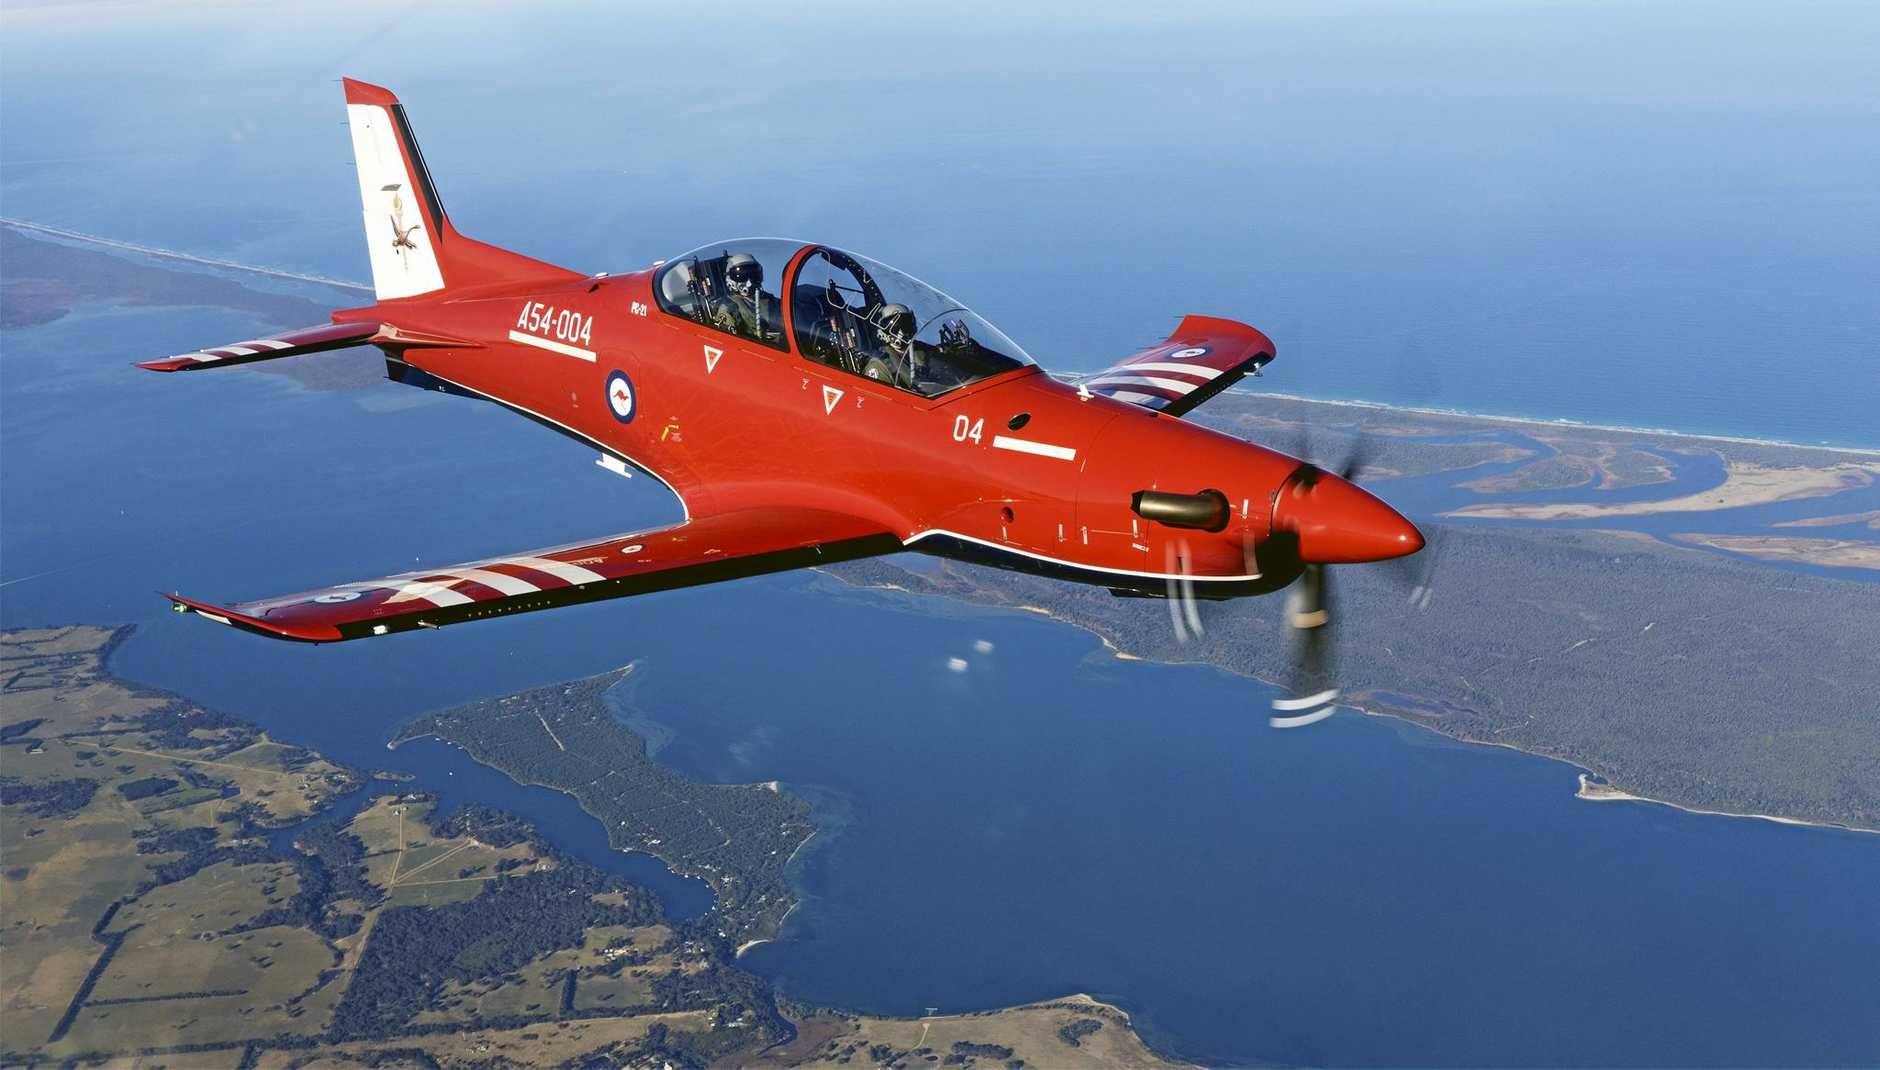 MISSION: One of Air Force's new Pilatus PC-21 aircraft during a flight in the Gippsland region.